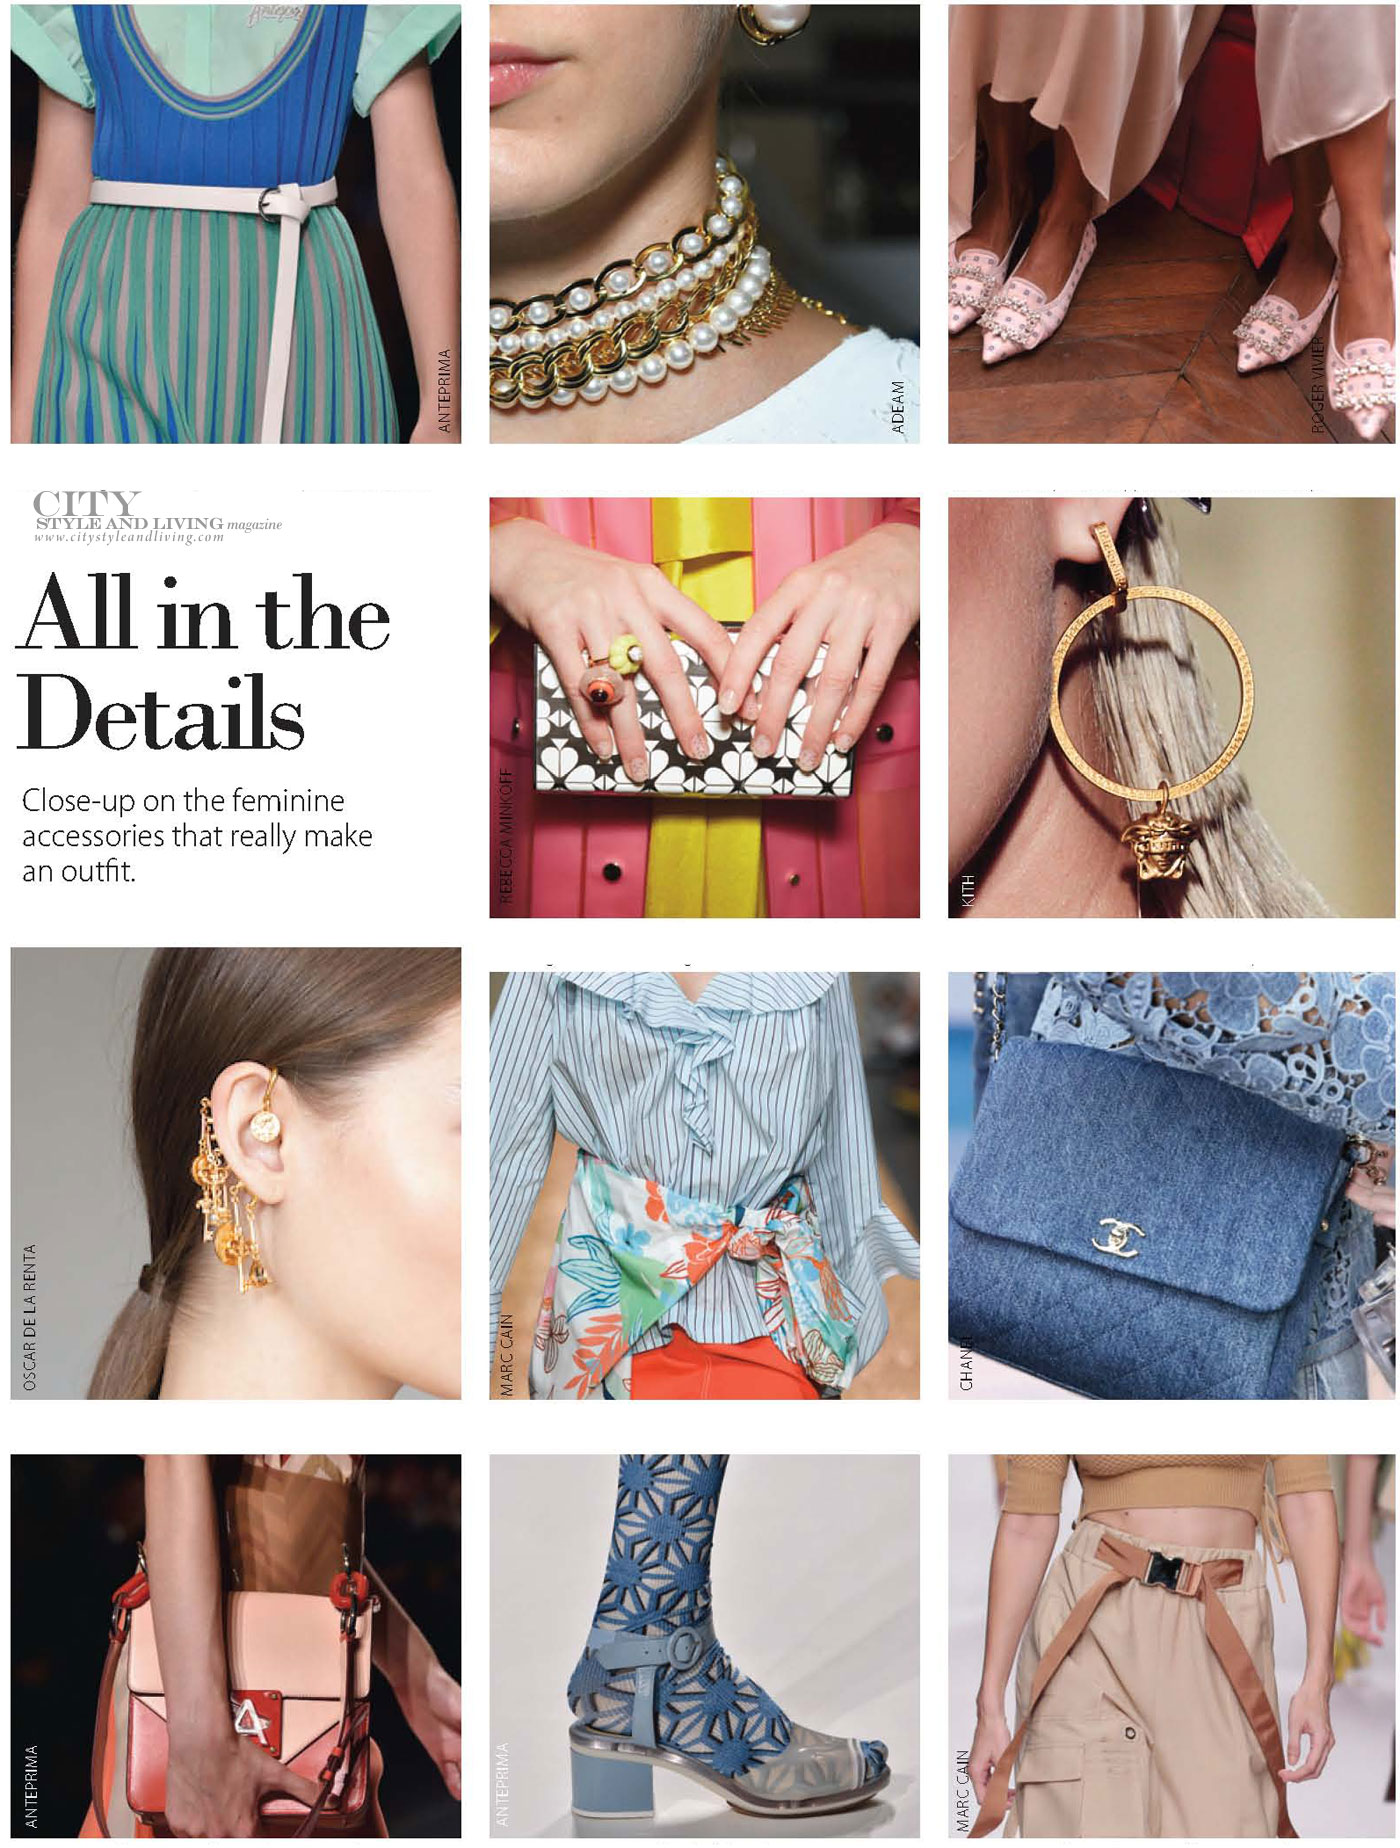 City Style and Living Magazine Spring 2019 Fashion Trends accessoriesDetails